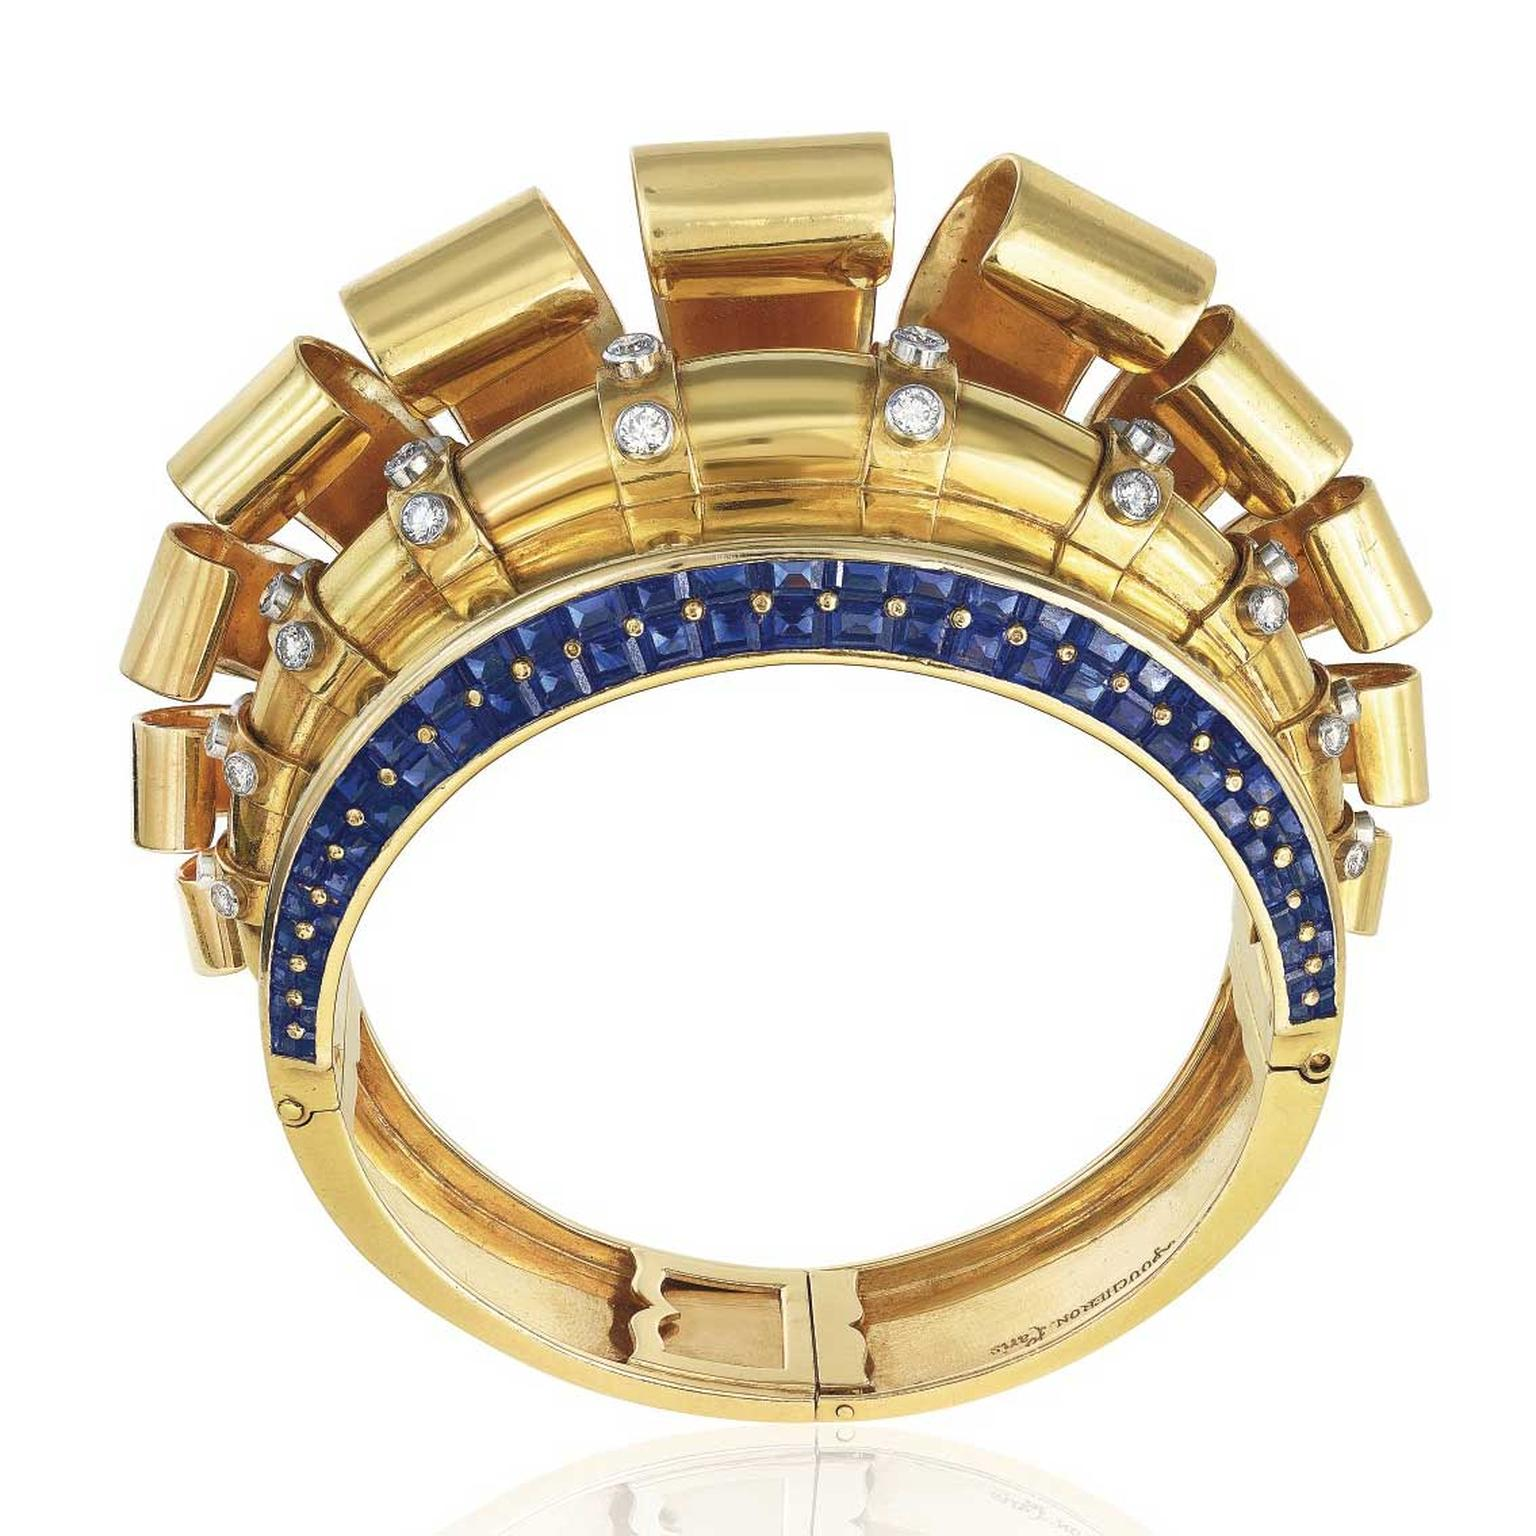 Vintage sapphire and diamond Boucheron Medicis bangle estimate: $80,000-120,000